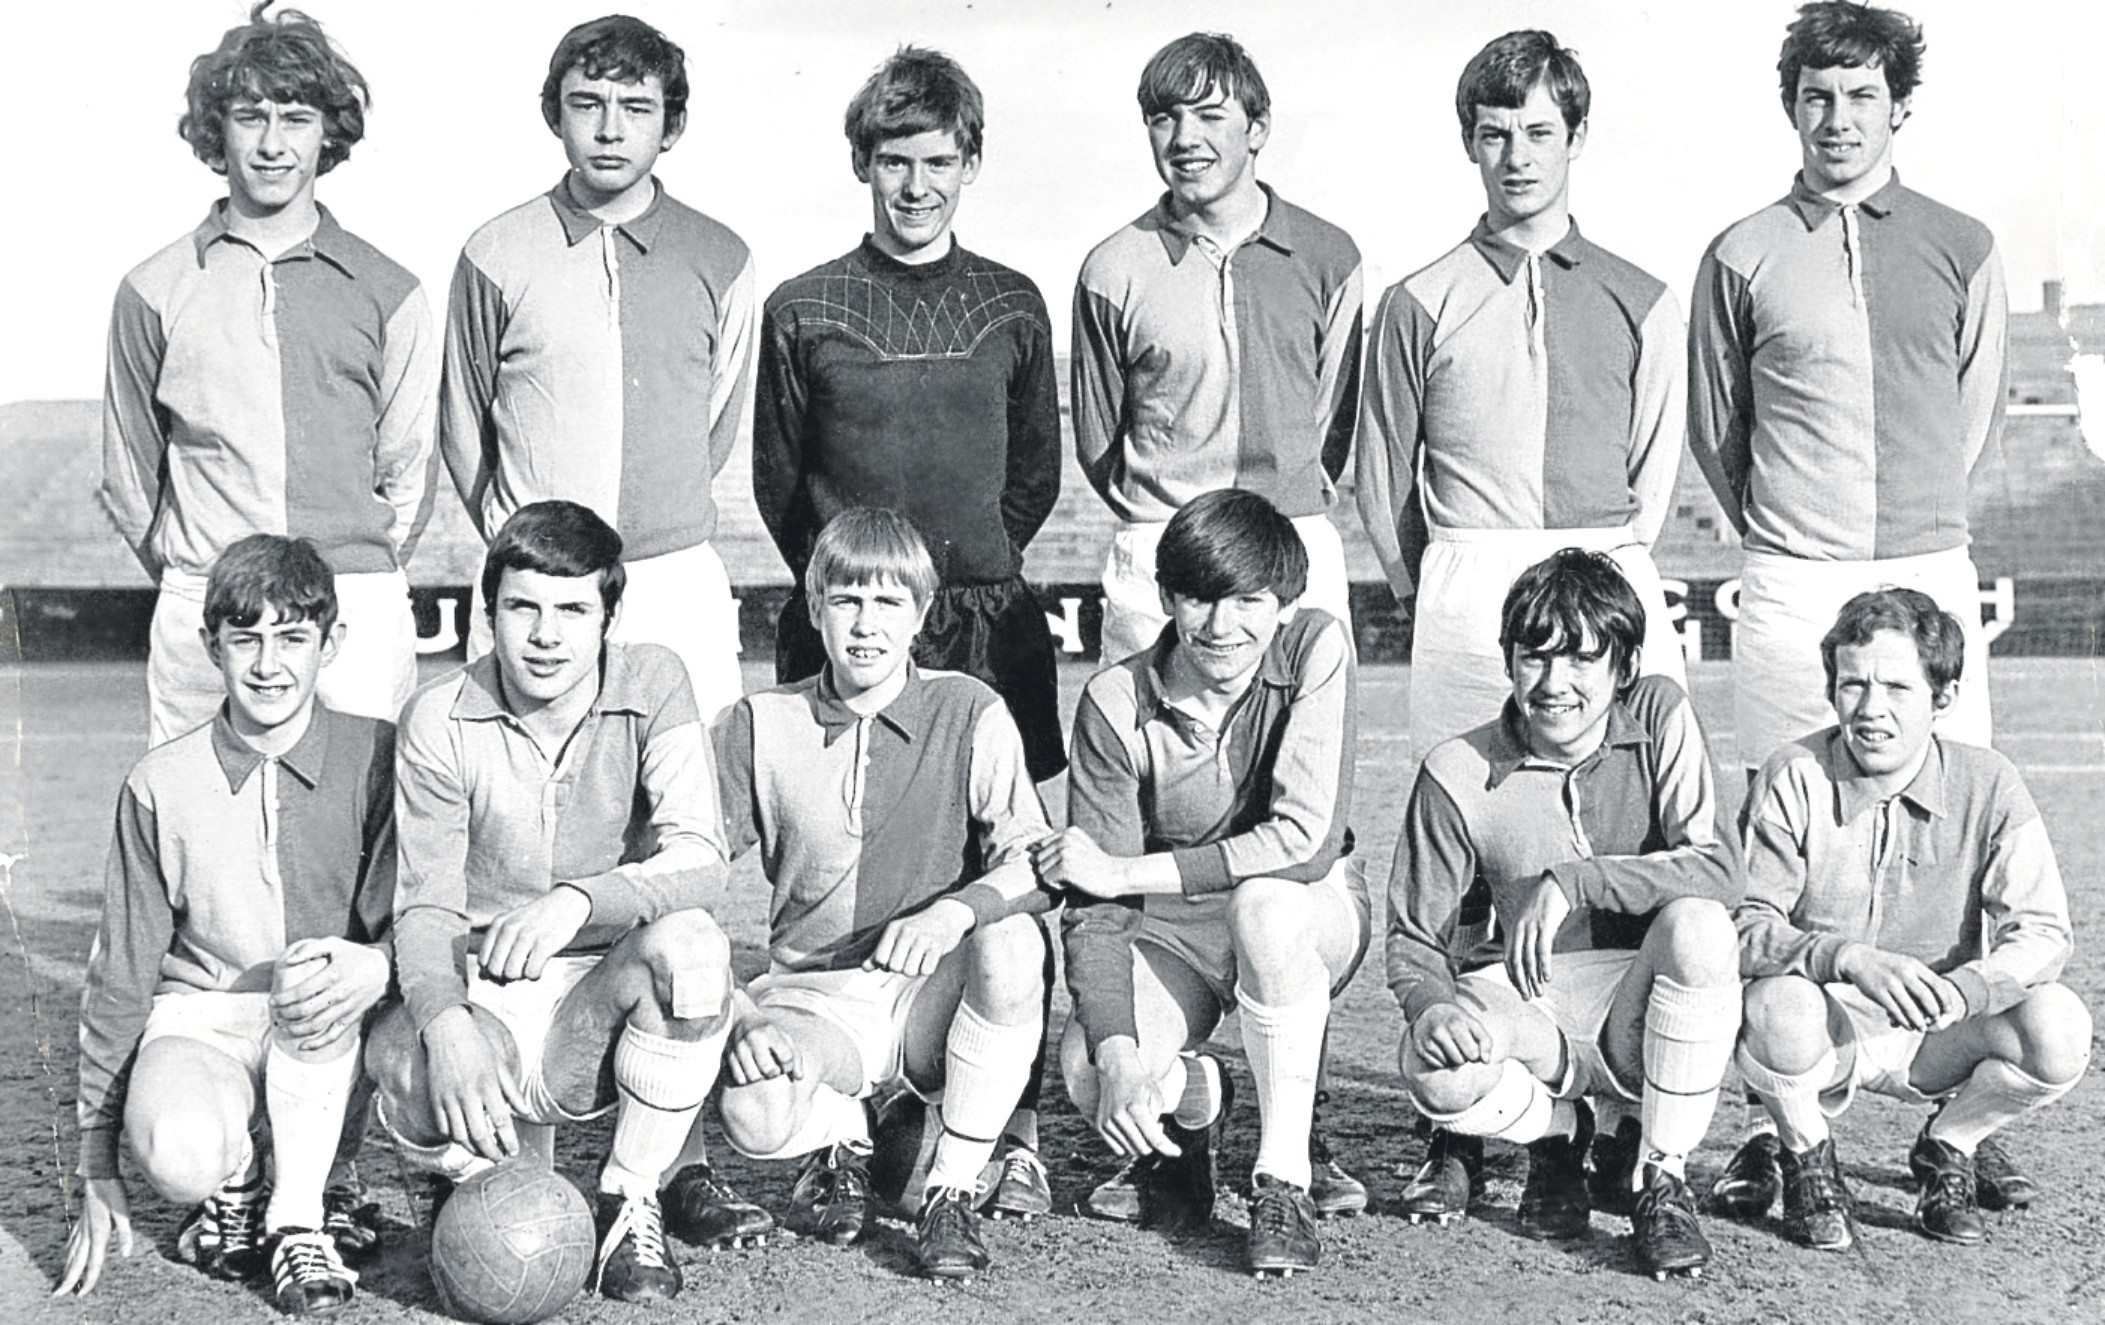 This is the only Linlathen football team photo I could find with players from the main story below. It's a 1969 team and  players listed but not in usual line-up order are S MacCulloch, A Geekie, G Addison, E Thomson, B Baird, J Jenkins,  J Hamilton, D Johnstone (second from left, front row), A Milton, I Palmer, J Jardine and J Fyfe.